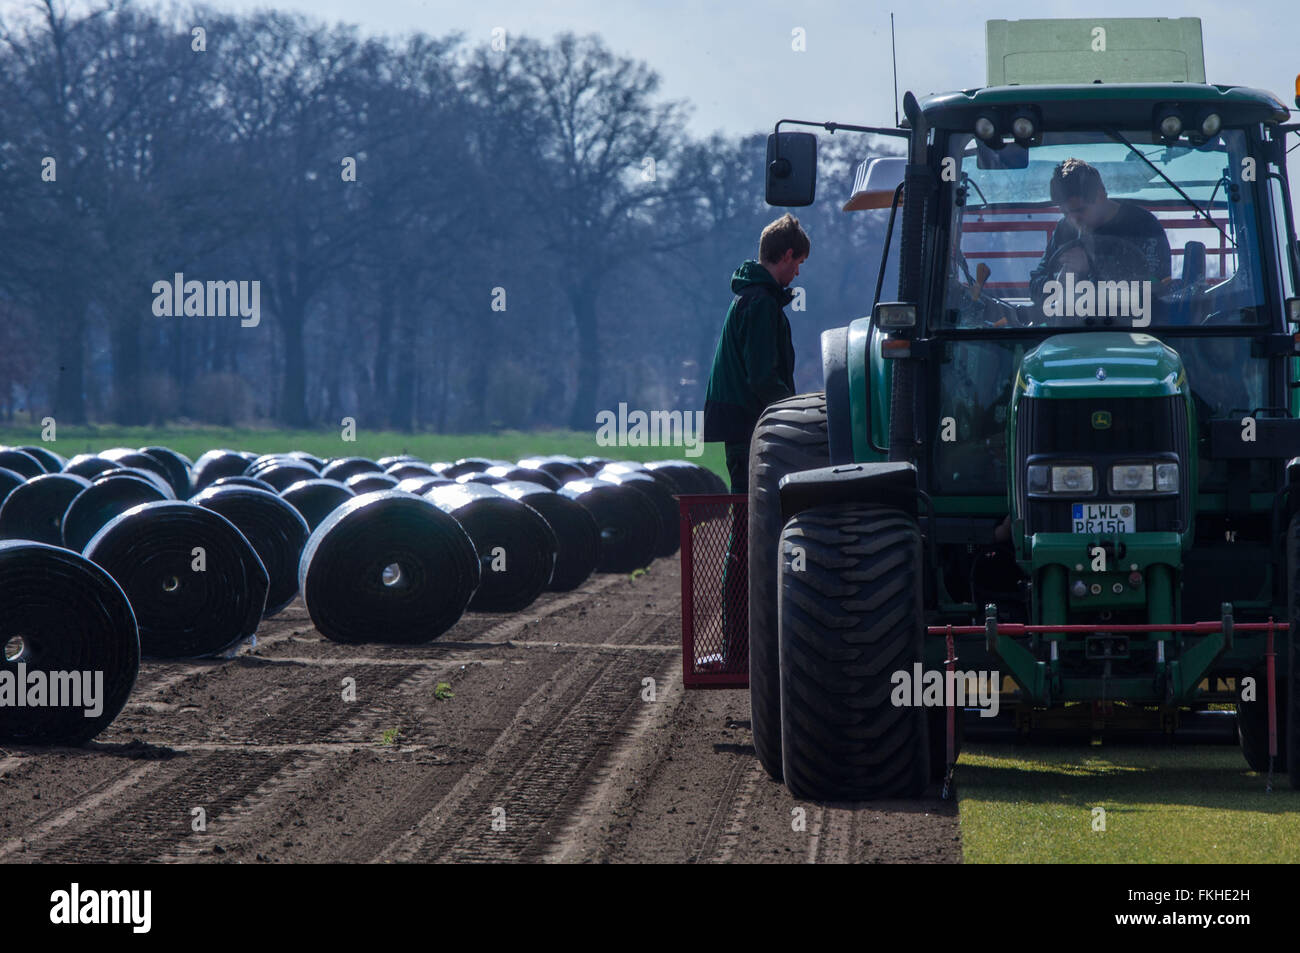 Staff members operate a special machine that peels and rolls up metres long sod lawn from the field near Alt Zachun - Stock Image